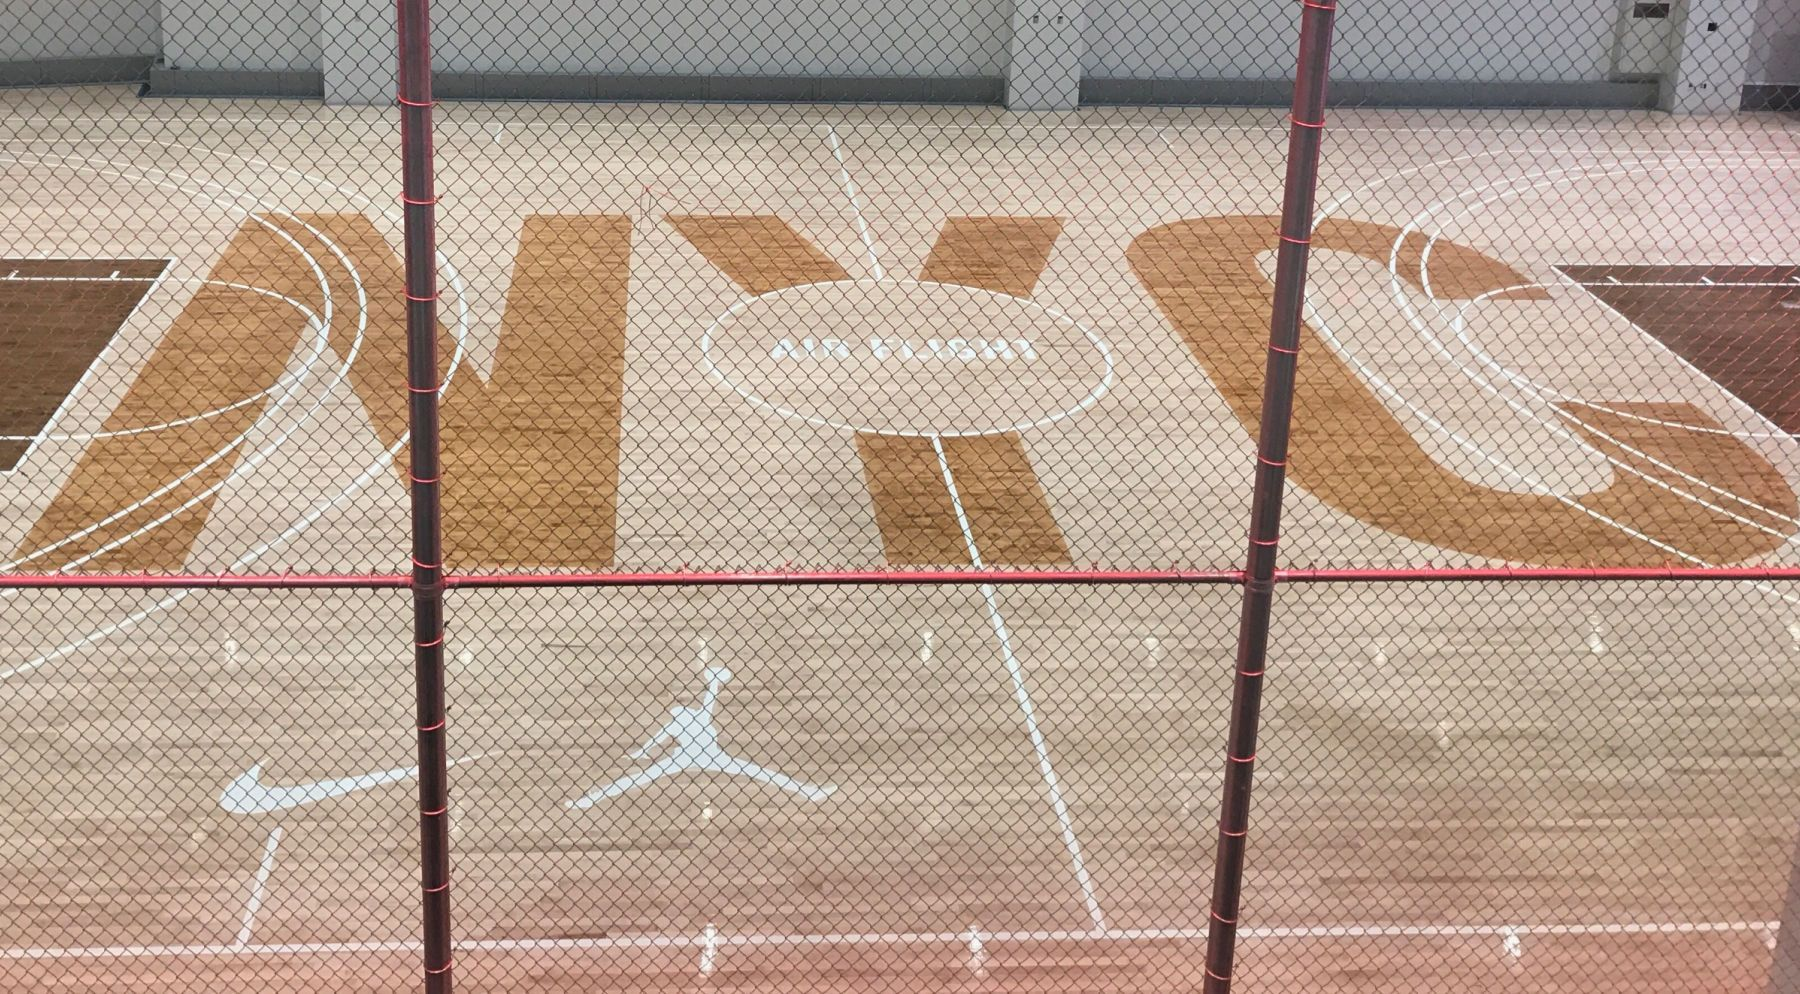 basketball gym court floor